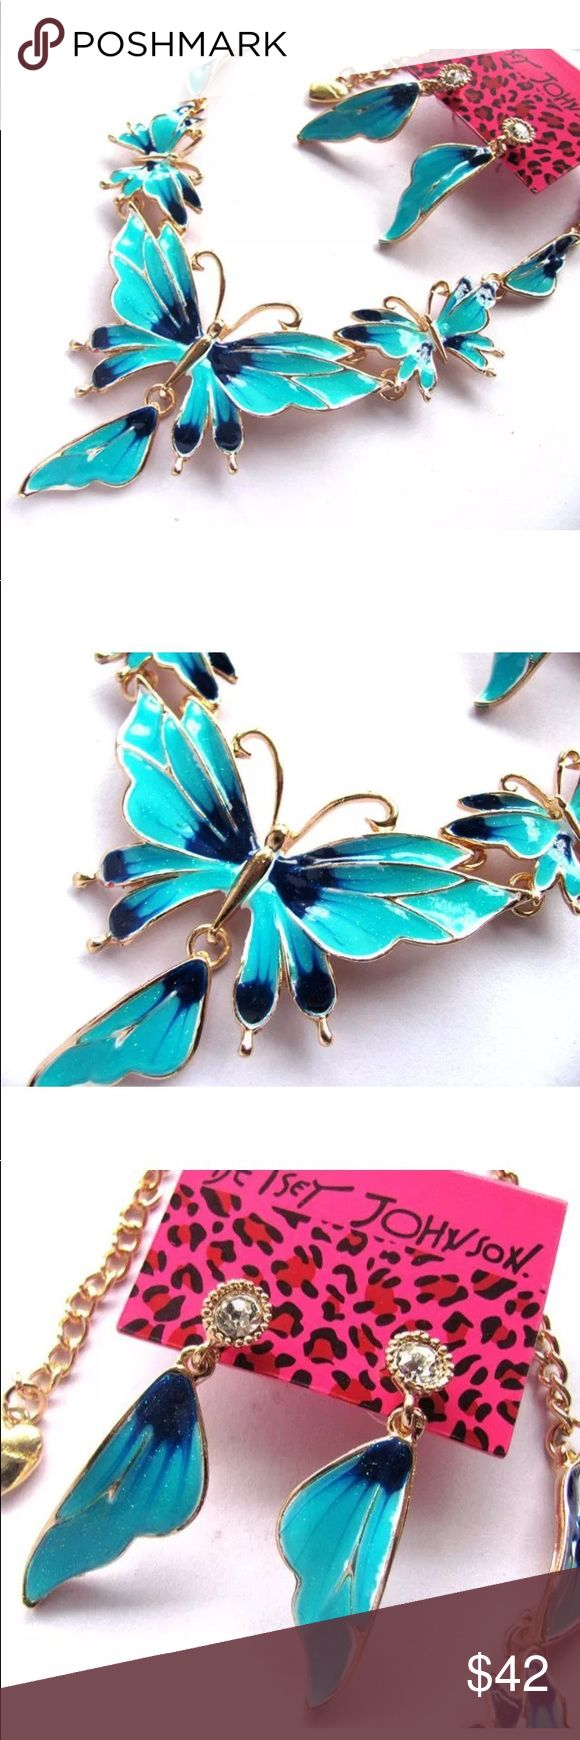 Betsey Johnson Teal 🦋 Butterfly Necklace Set Brand new boutique item. Gorgeous Teal Blue Butterfly Statement bib necklace with matching earrings. Betsey Johnson Jewelry Necklaces